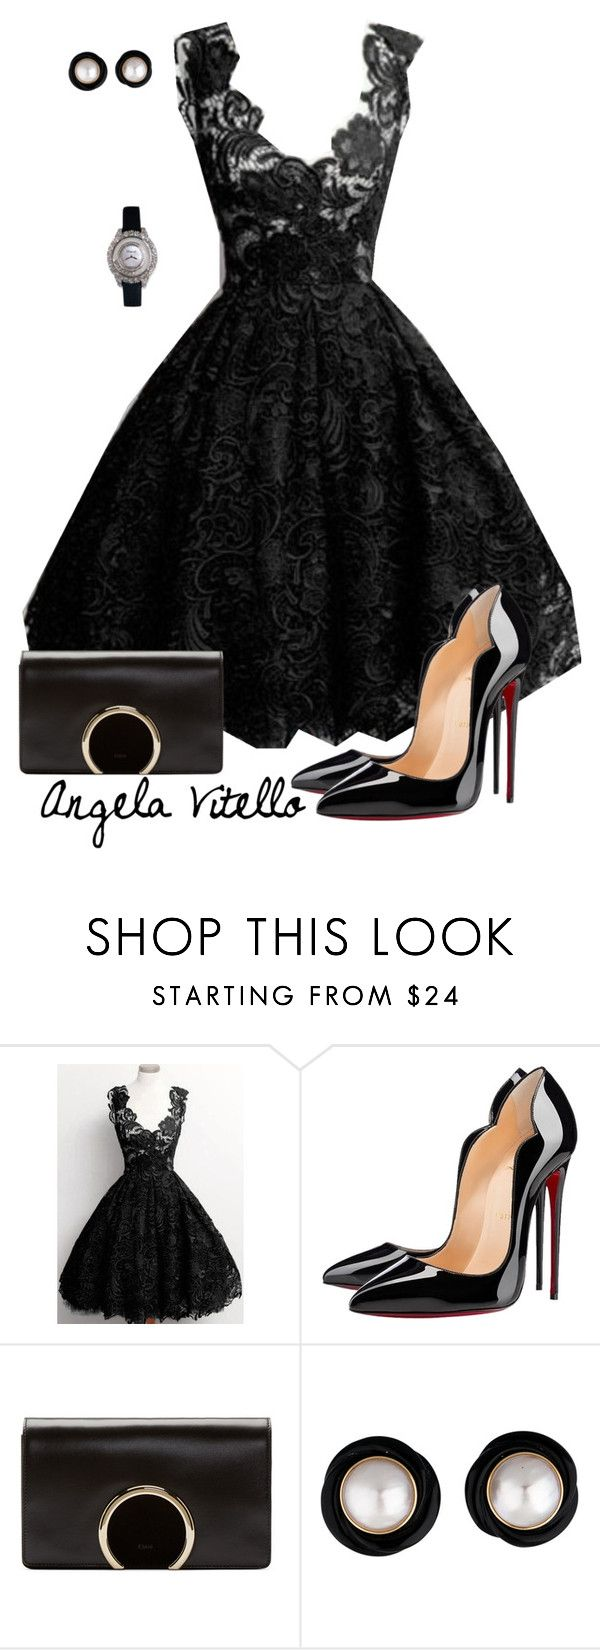 Untitled #646 by angela-vitello on Polyvore featuring Christian Louboutin, Chloé and Chopard